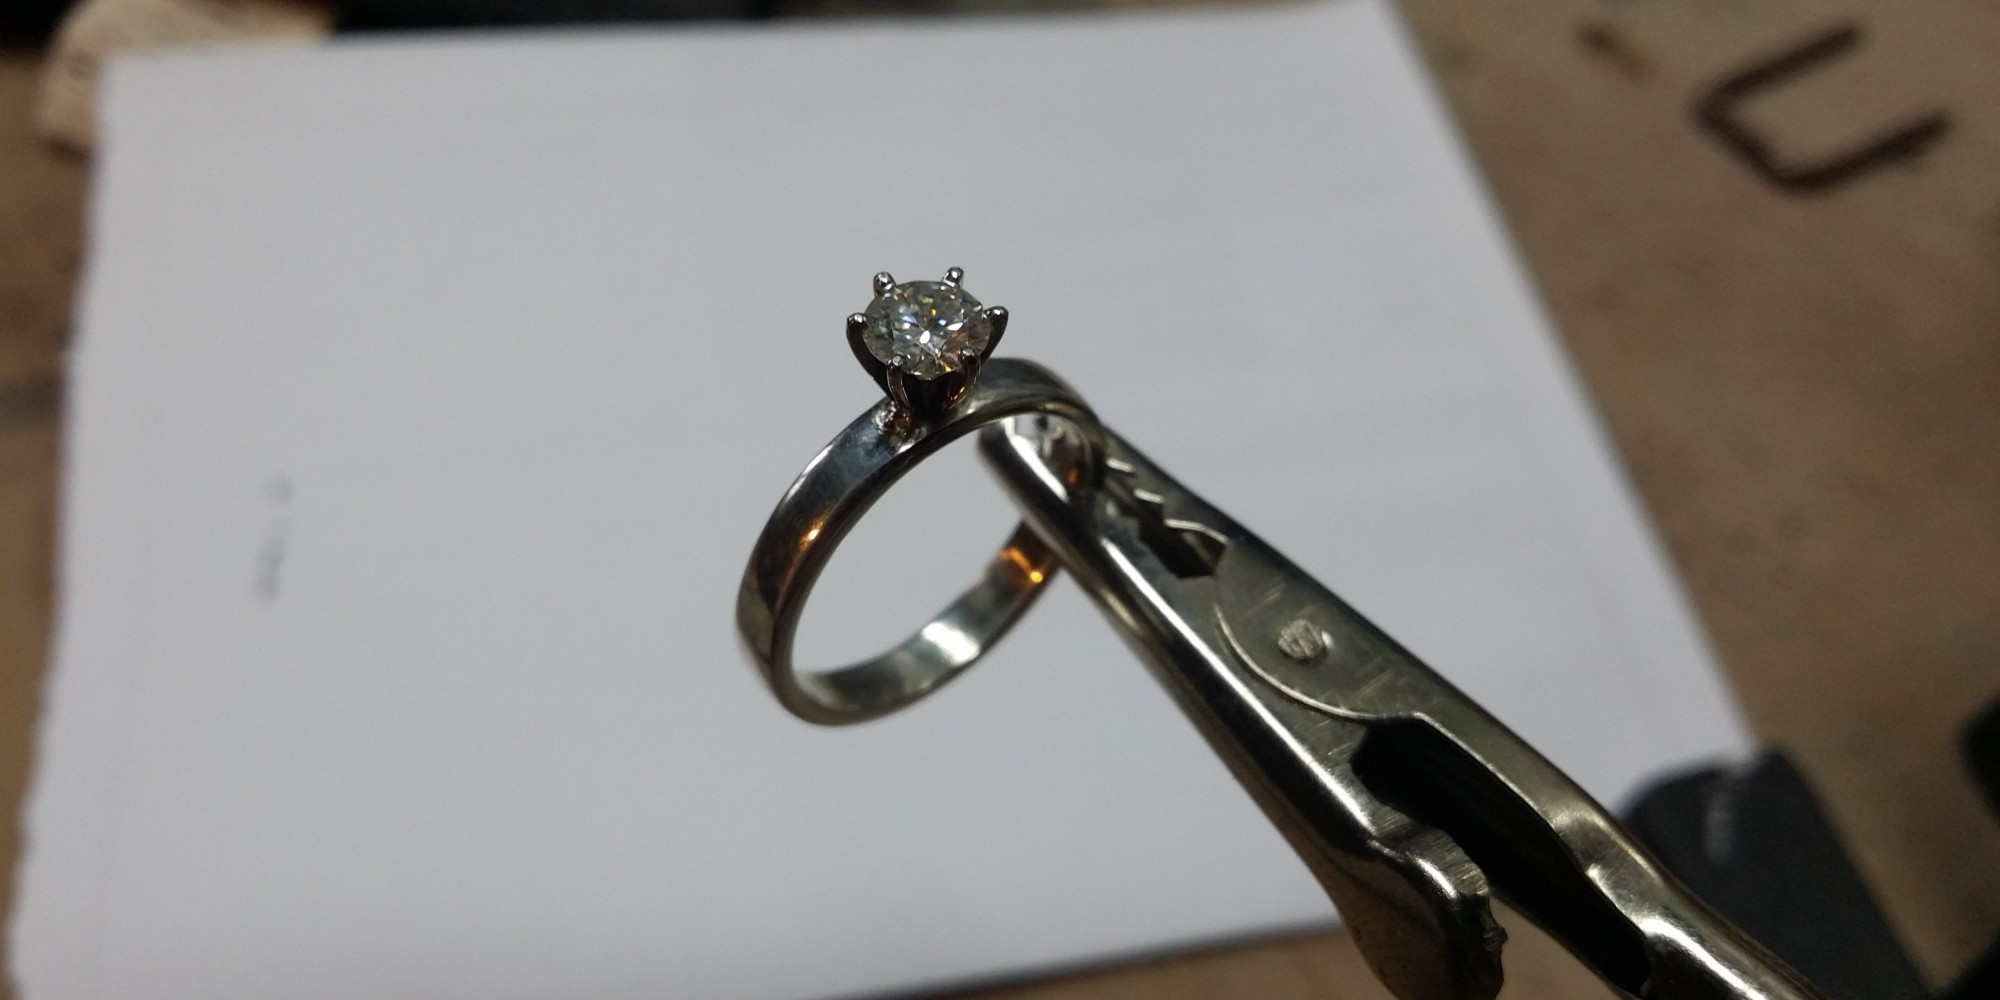 Best ideas about DIY Wedding Ring . Save or Pin This Man Secretly Hand Made A Unique Engagement Ring While Now.